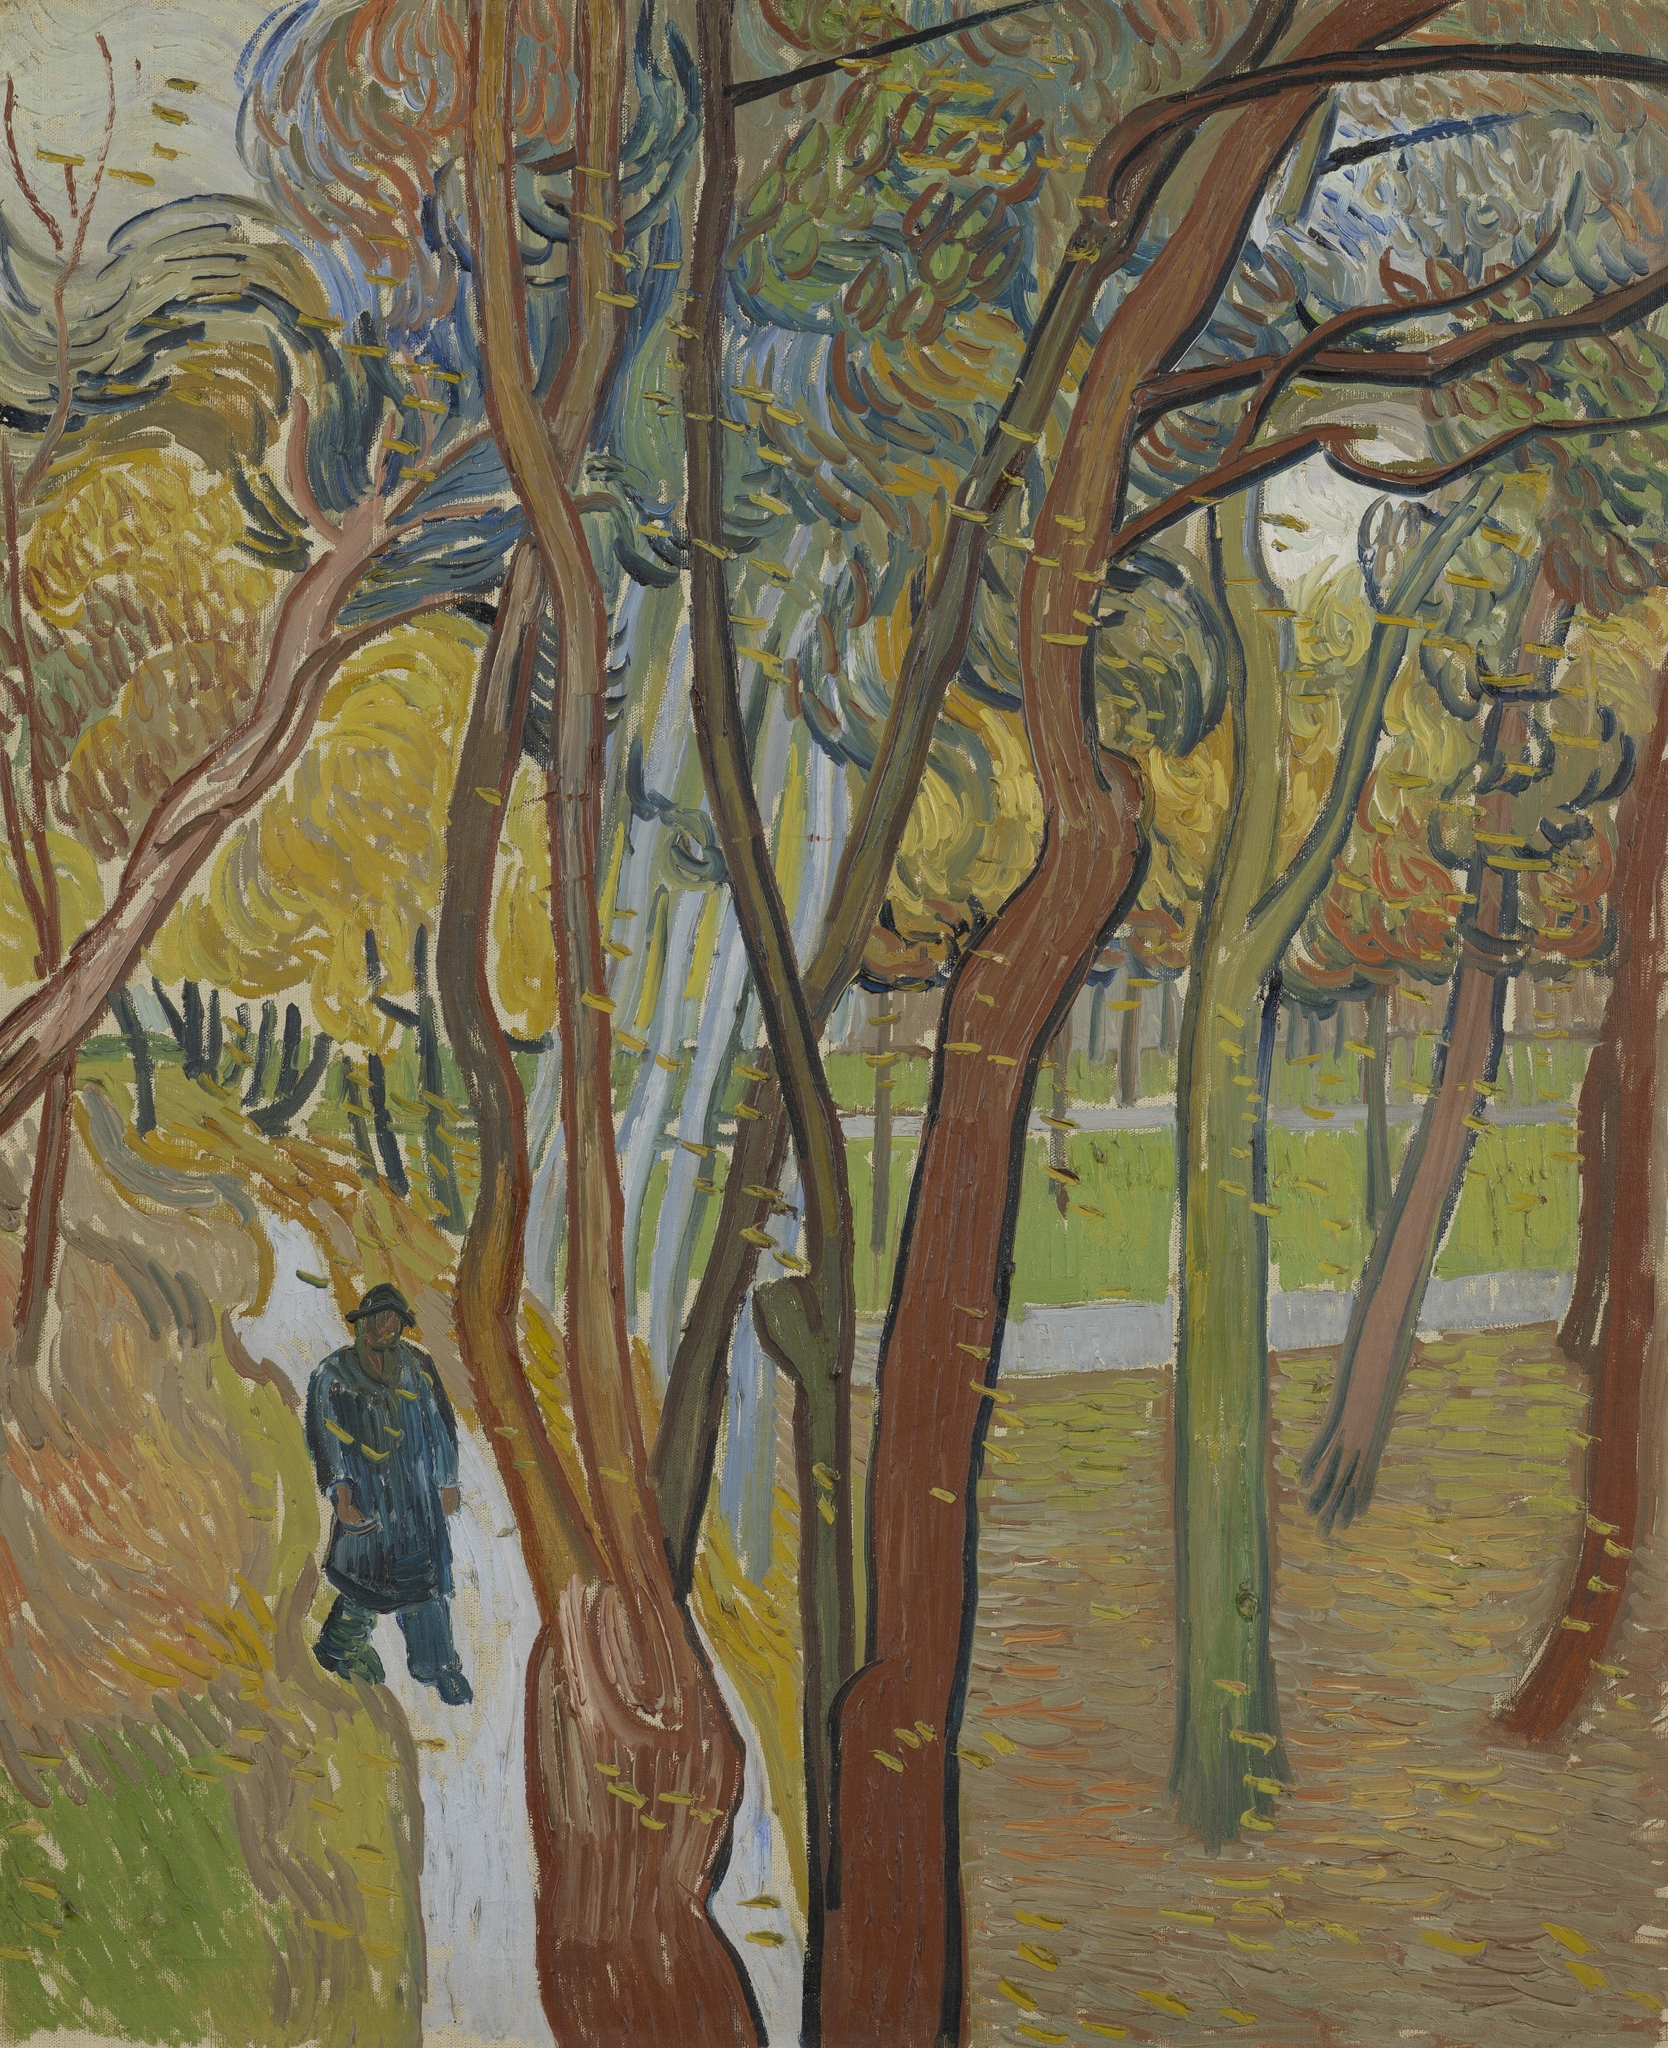 Van Gogh Rousseau Corot In The Forest Opens At The